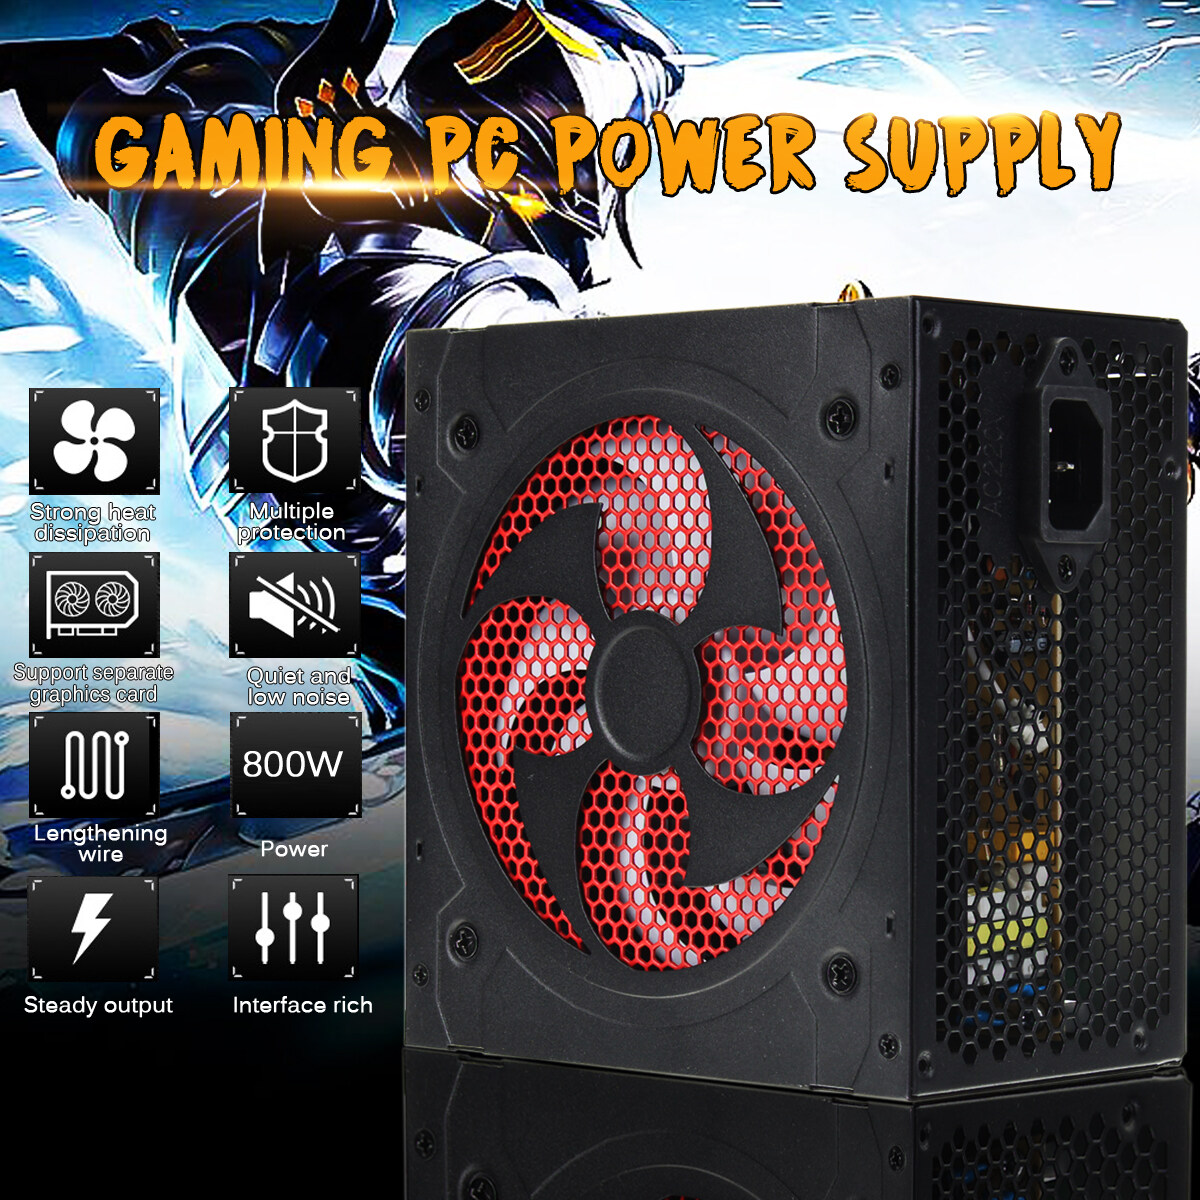 220V 800W Computer Power Supply PFC 20+ 4 Pin PC Power Supply with ATX 12V 2.31 High-end Computer Configuration